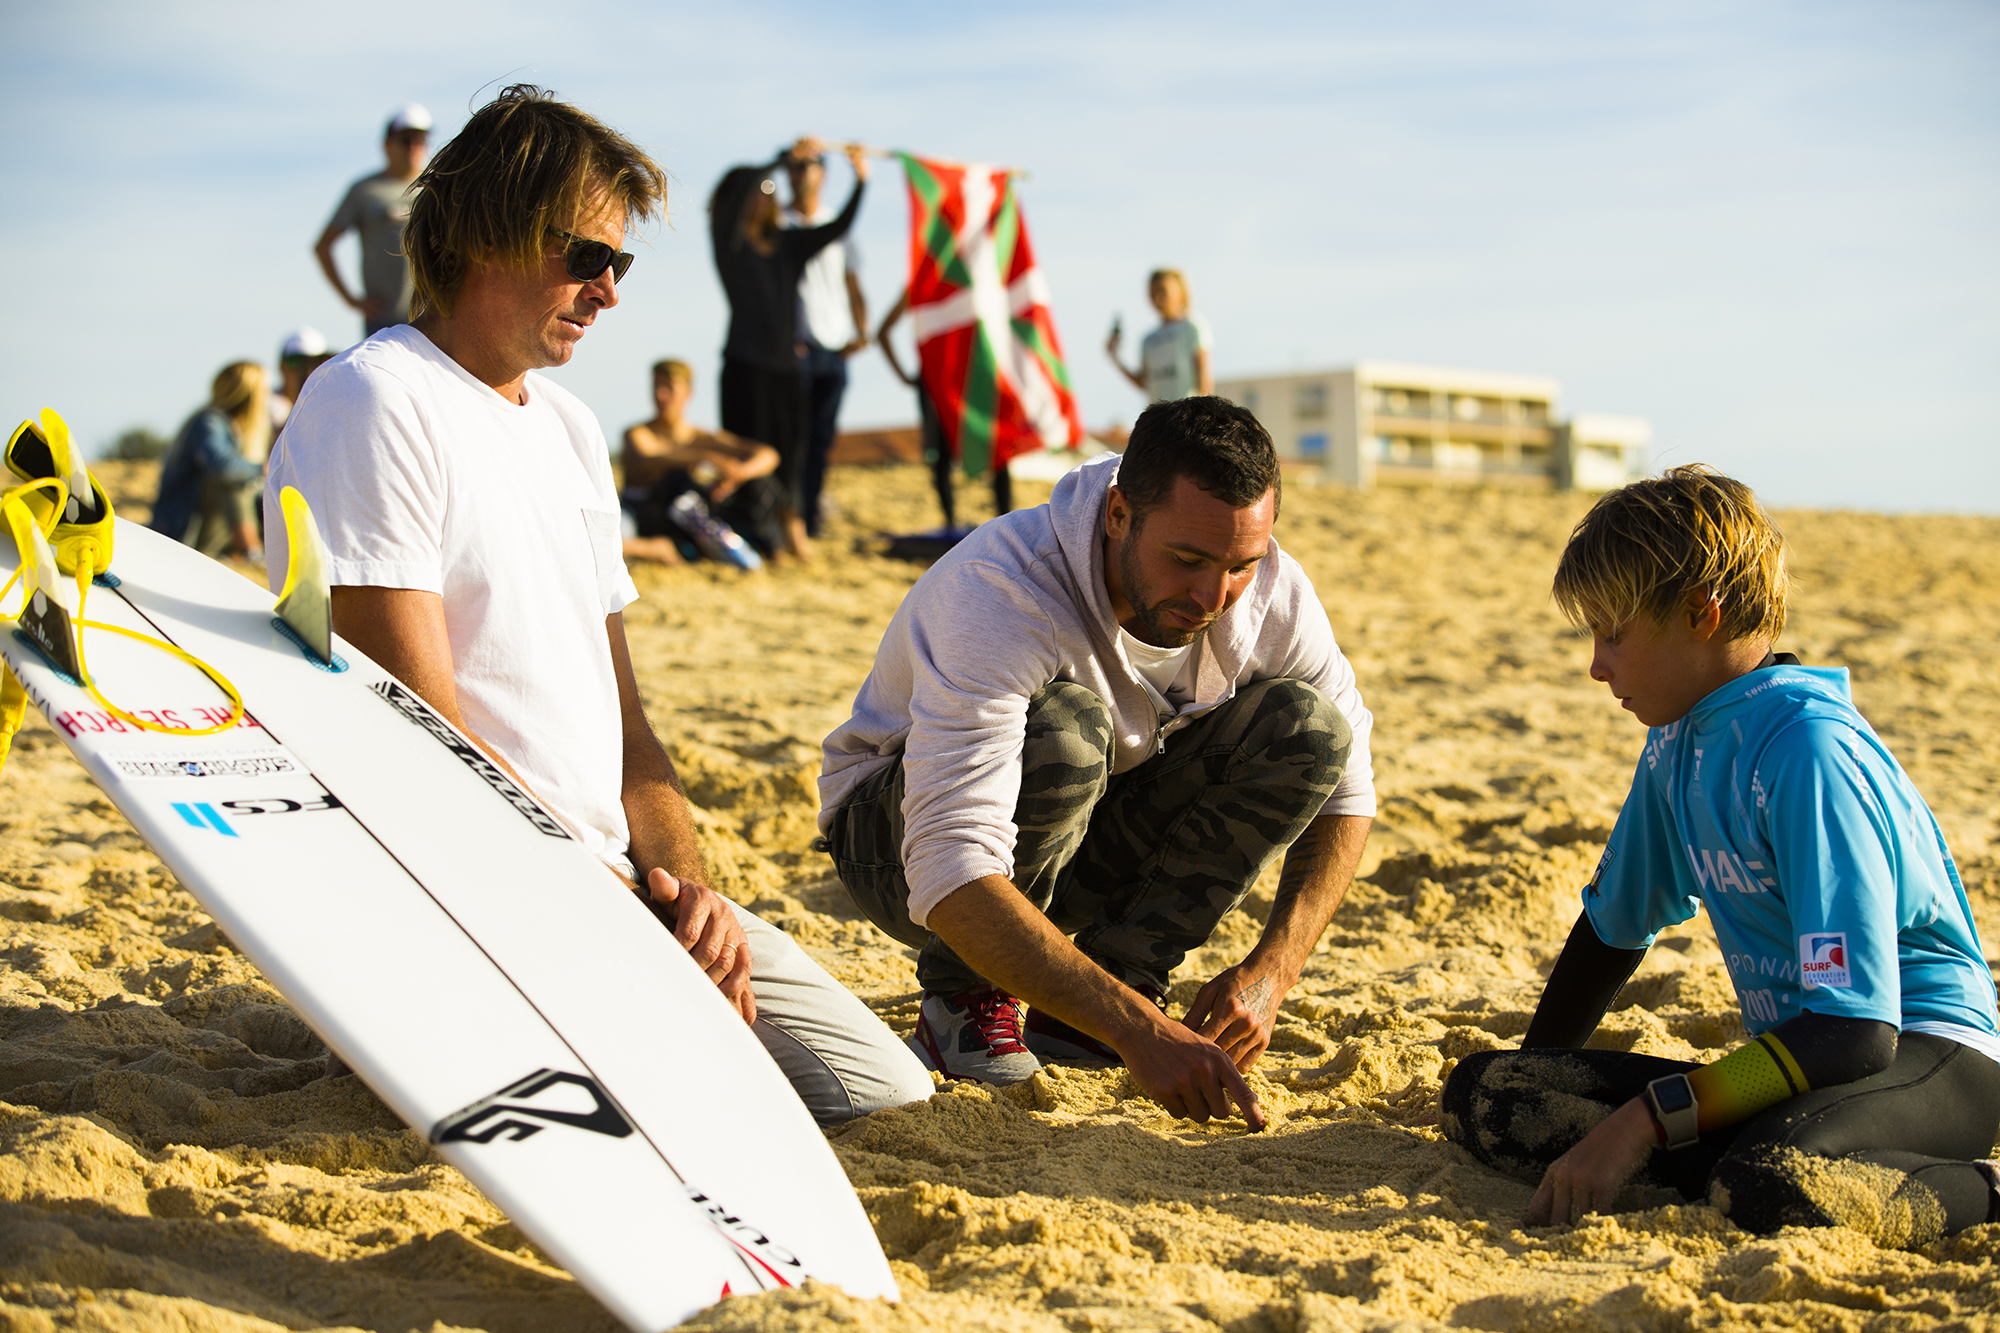 noe-ledee-dimitri-ouvre-french-surfing-championships-2017-hossegor-we-creative-antoine-justes